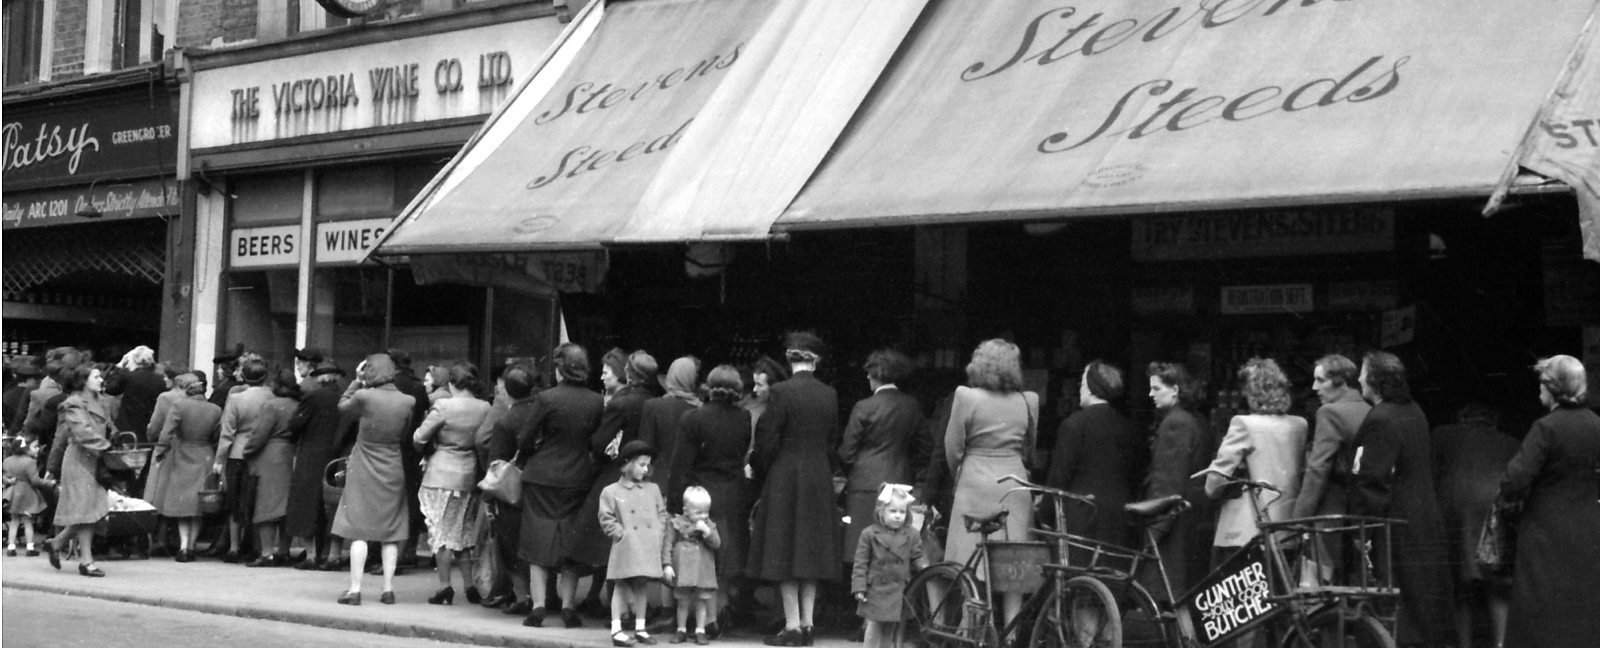 BBC iWonder - Rationing: Could the WW2 diet make you healthier?